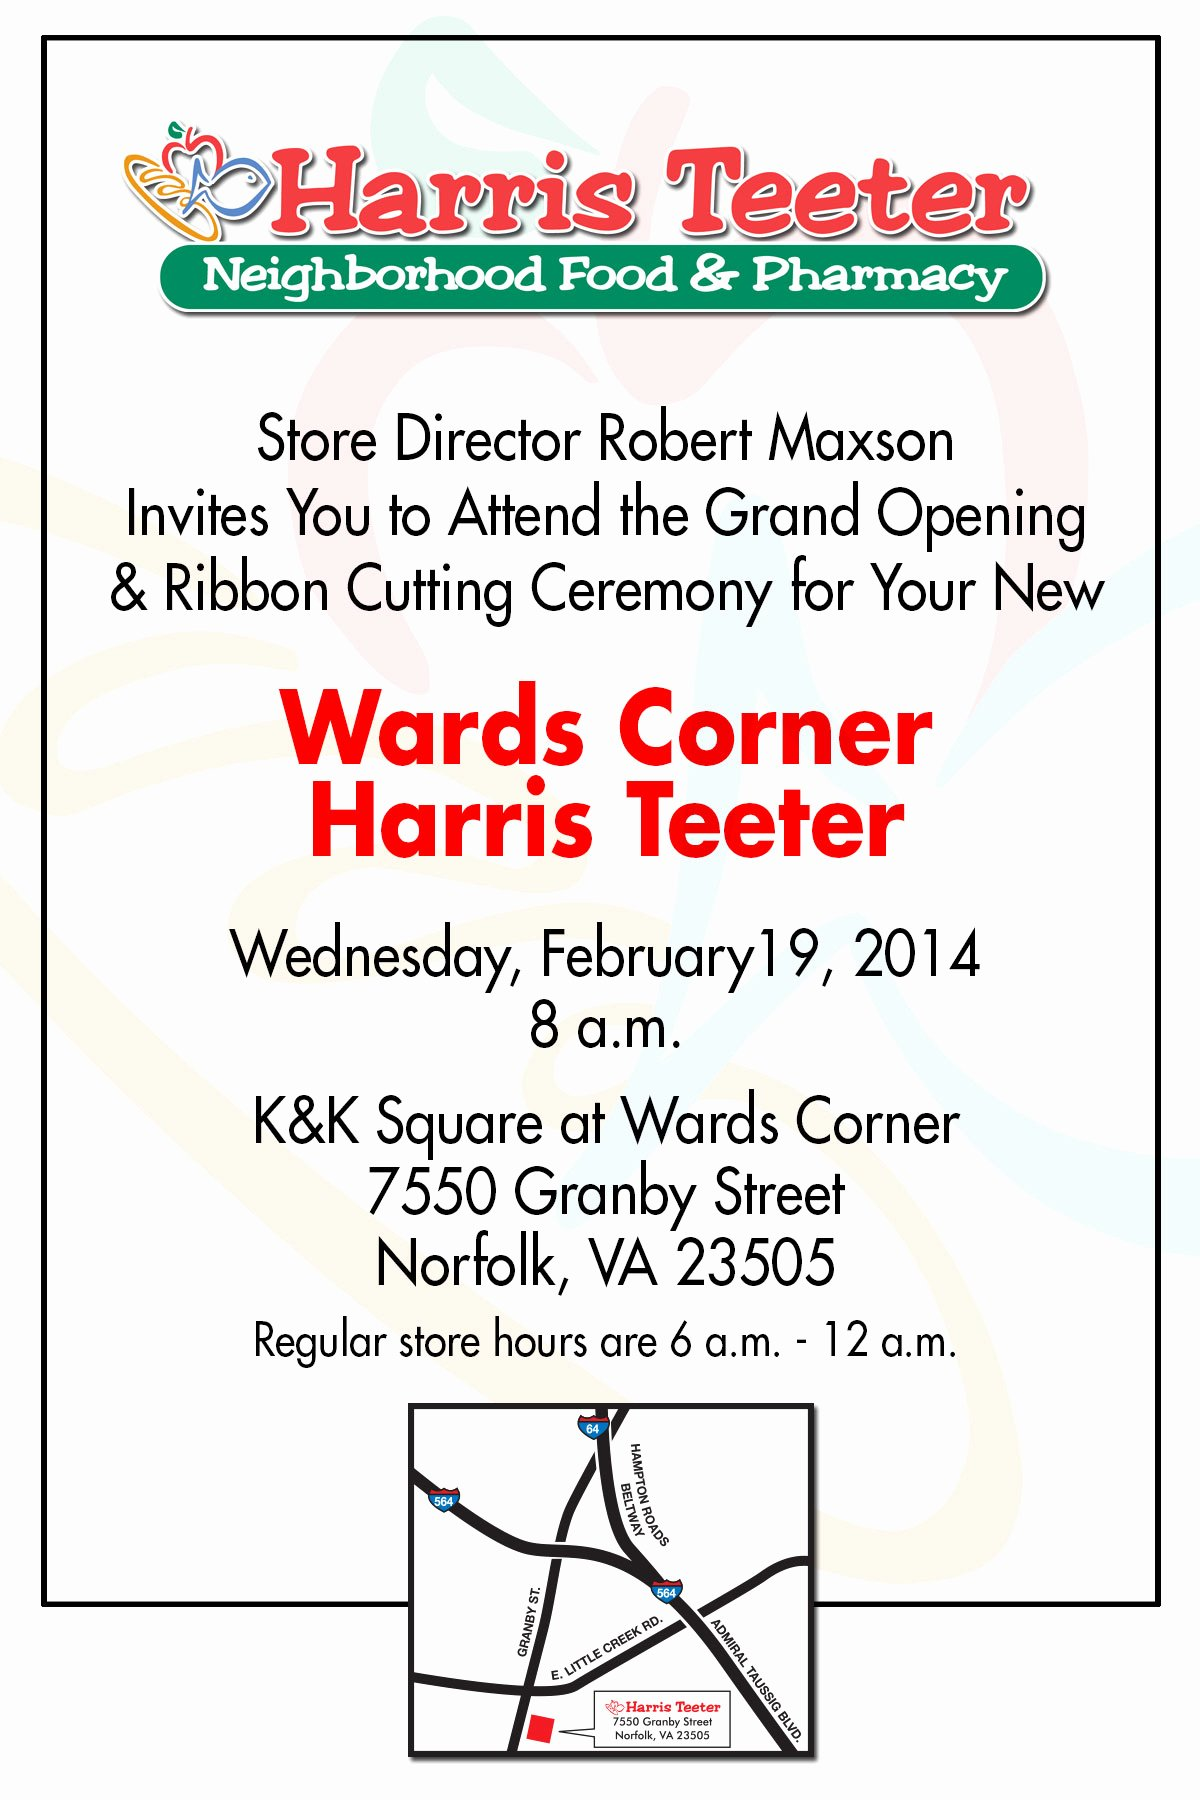 Ribbon Cutting Ceremony Invitation Template Lovely Harris Teeter